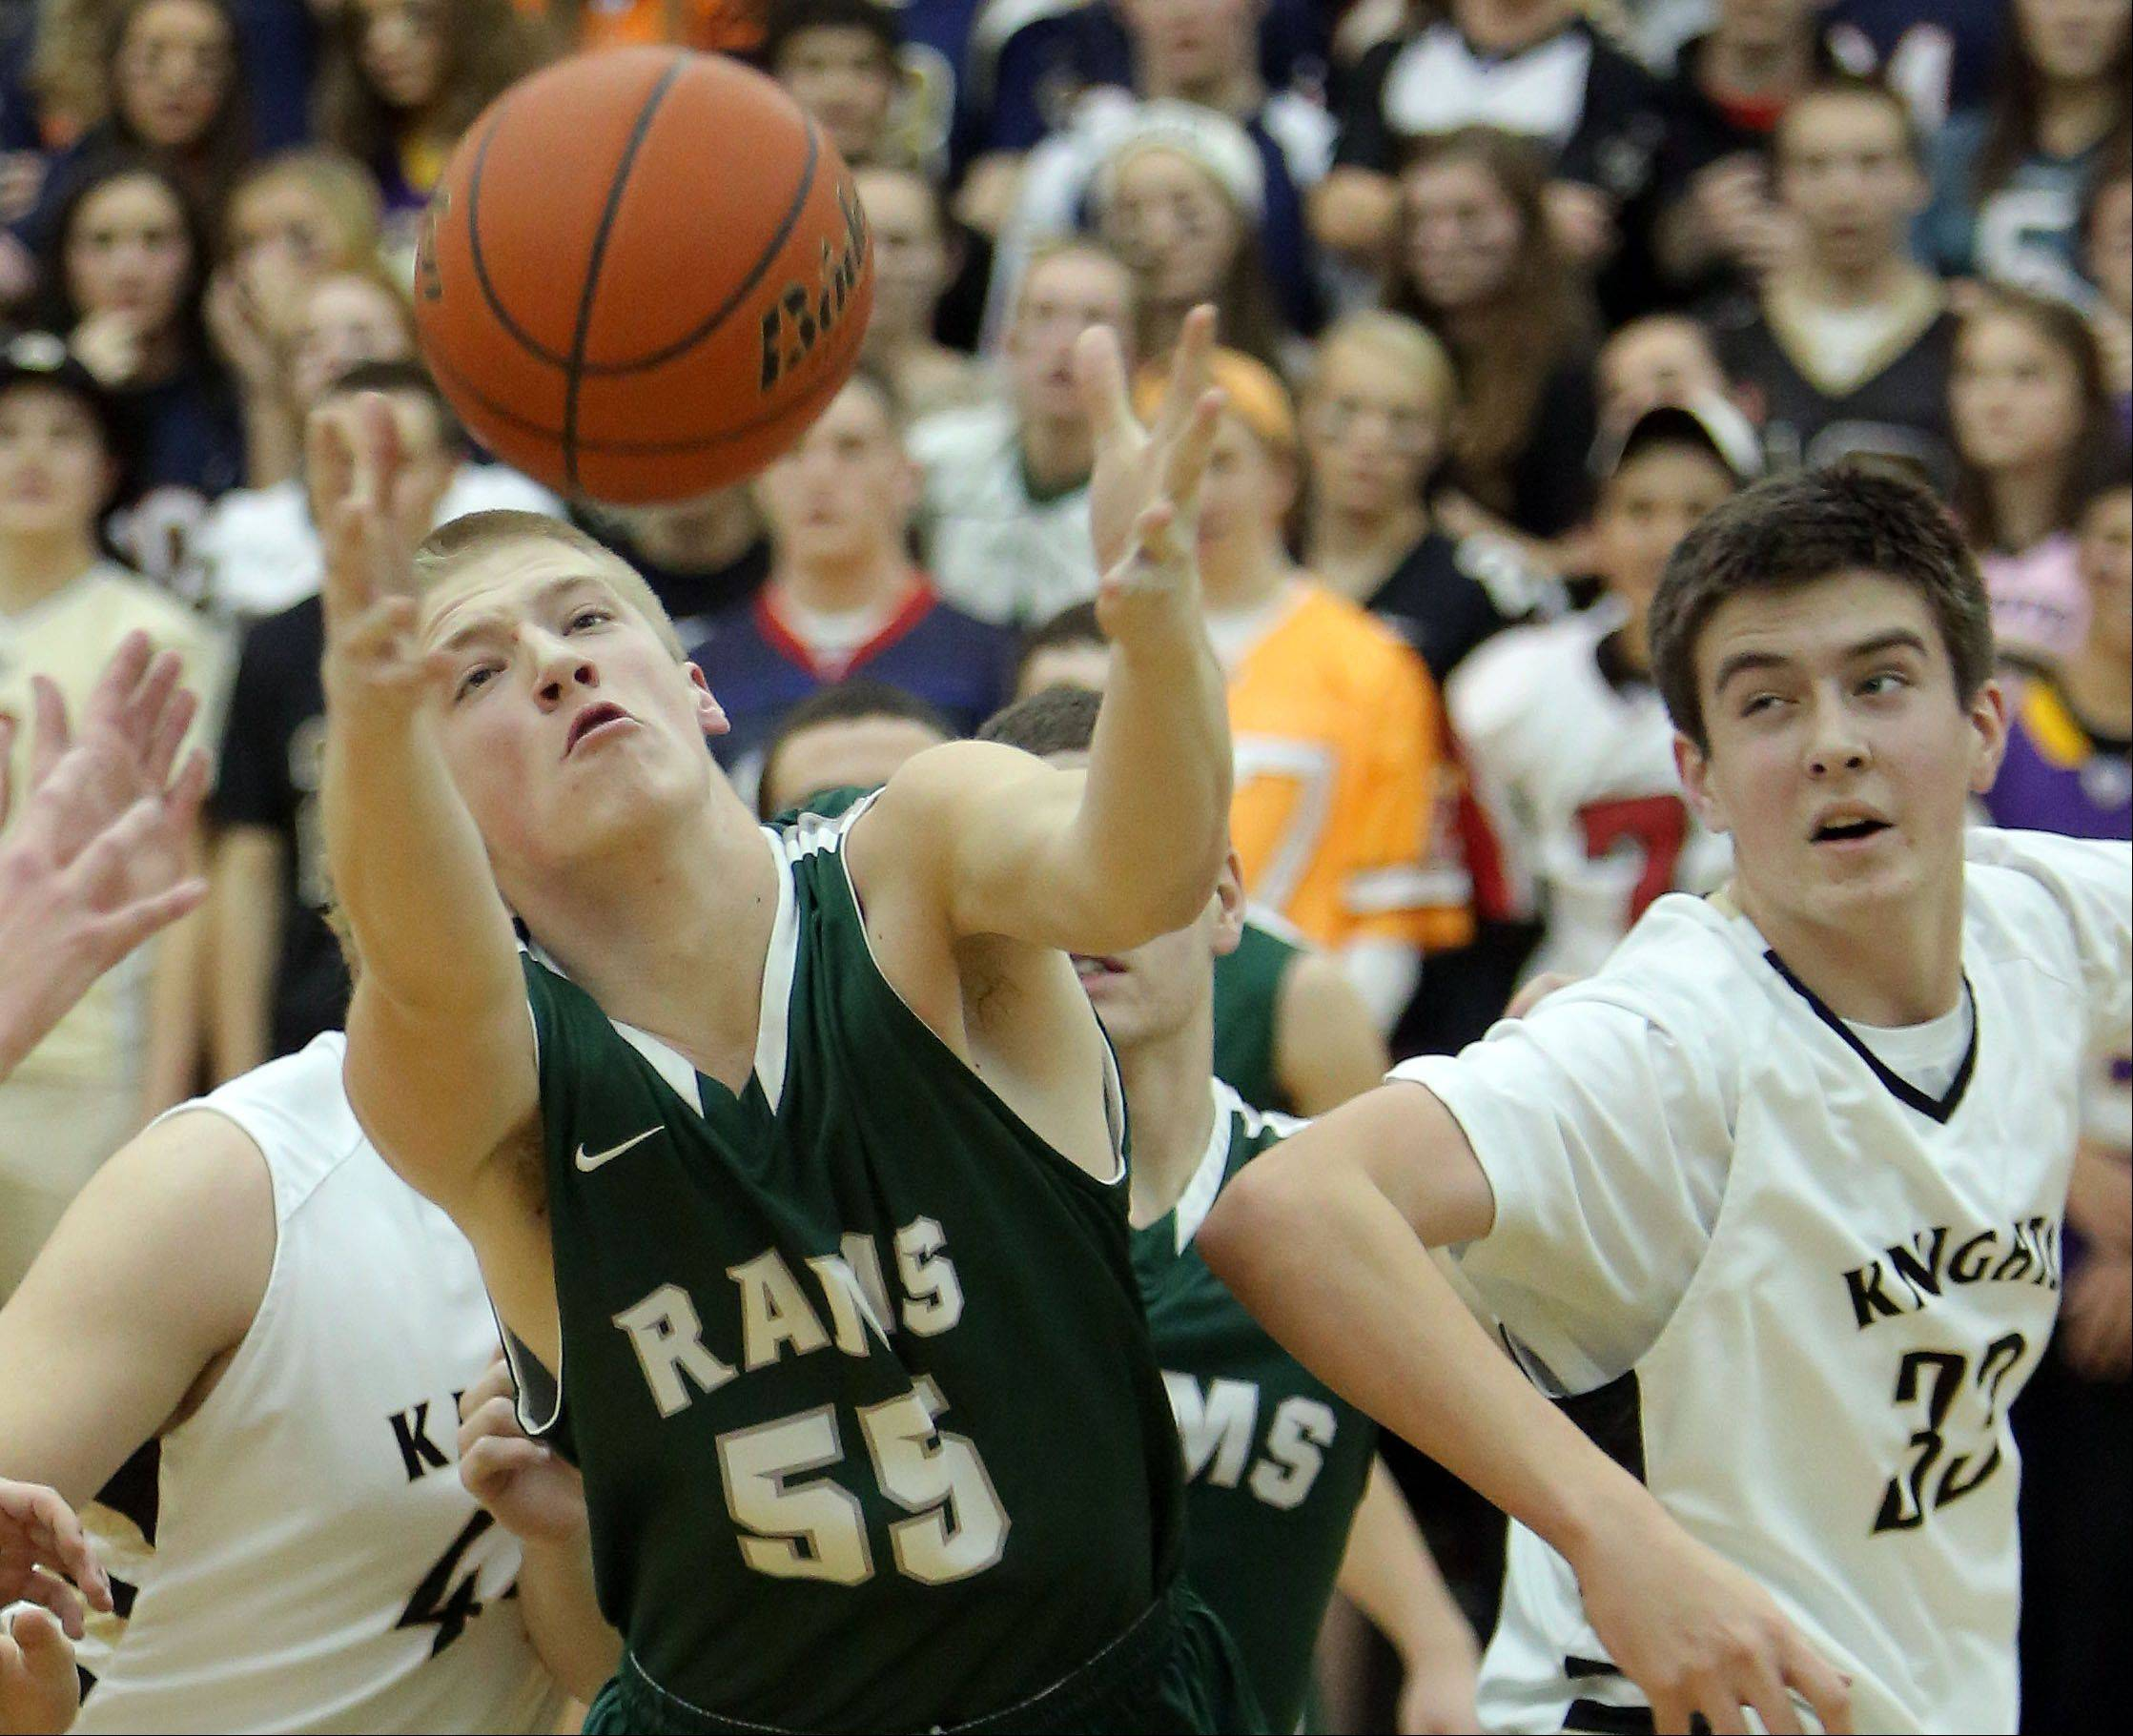 Grayslake Central's Jack Beckman, left, battles for a rebound with Grayslake North's Aiden Einloth on Friday night at Grayslake North.